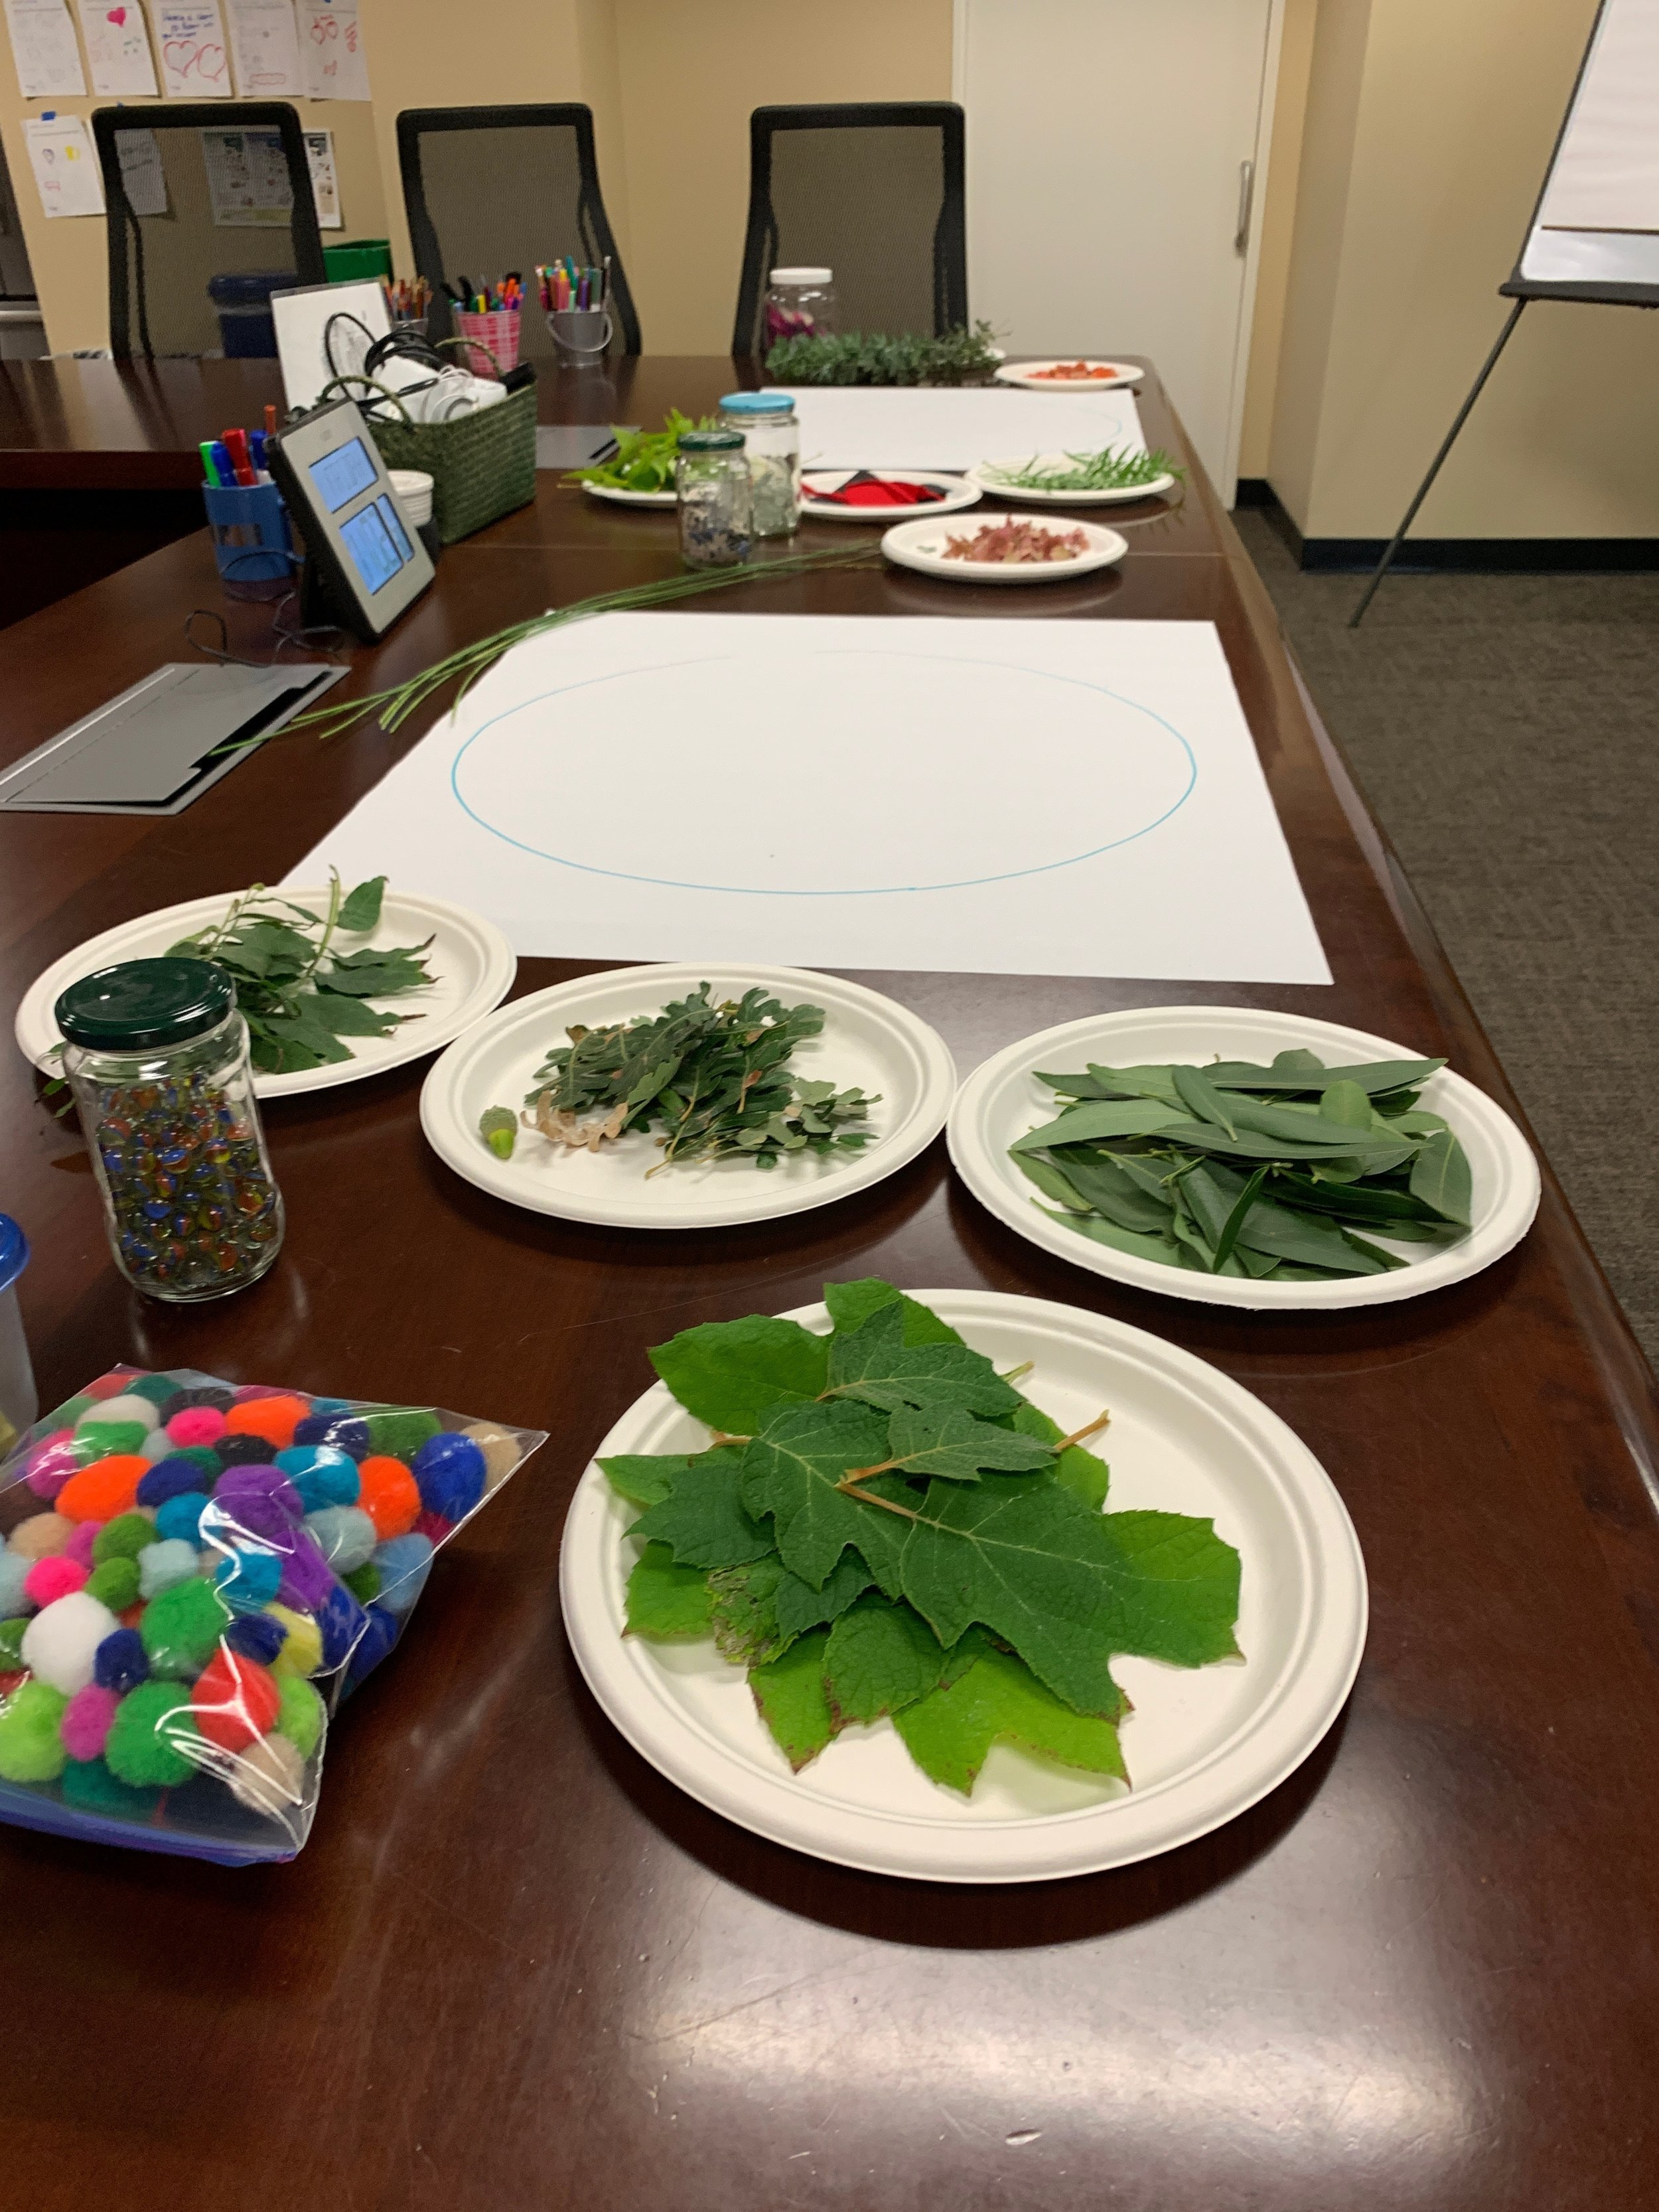 Items to arrange into mandalas ready to go for our experience today. (Photograph shows a conference room table with plates of leaves, flowers, and other items to arrange on white paper.)